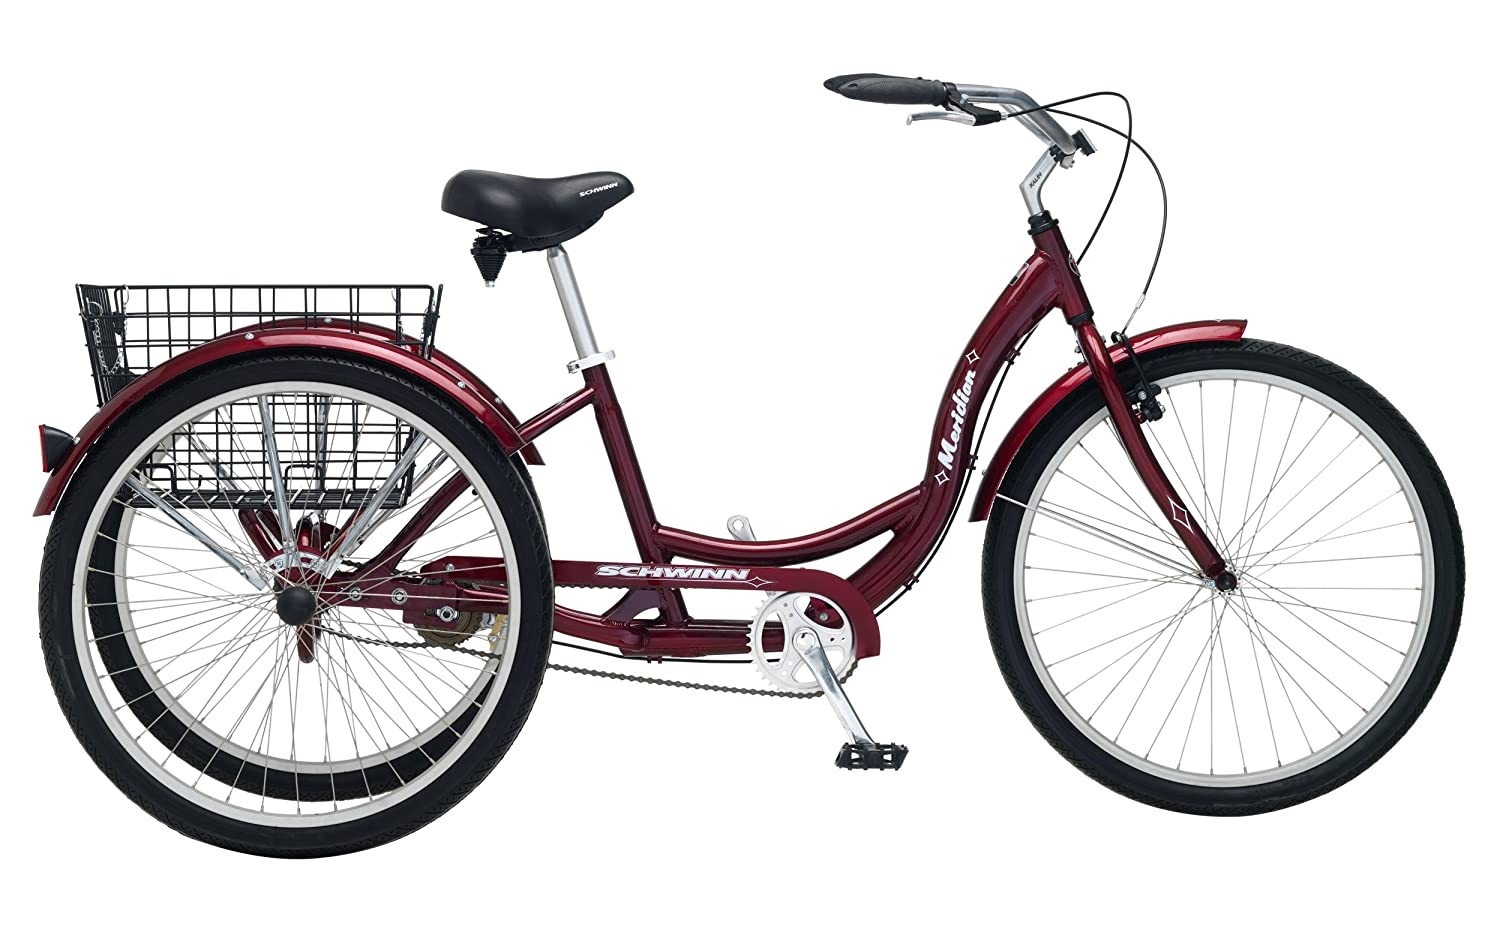 3 Wheel Bikes For Adults At Walmart Adult Inch Wheel Bike